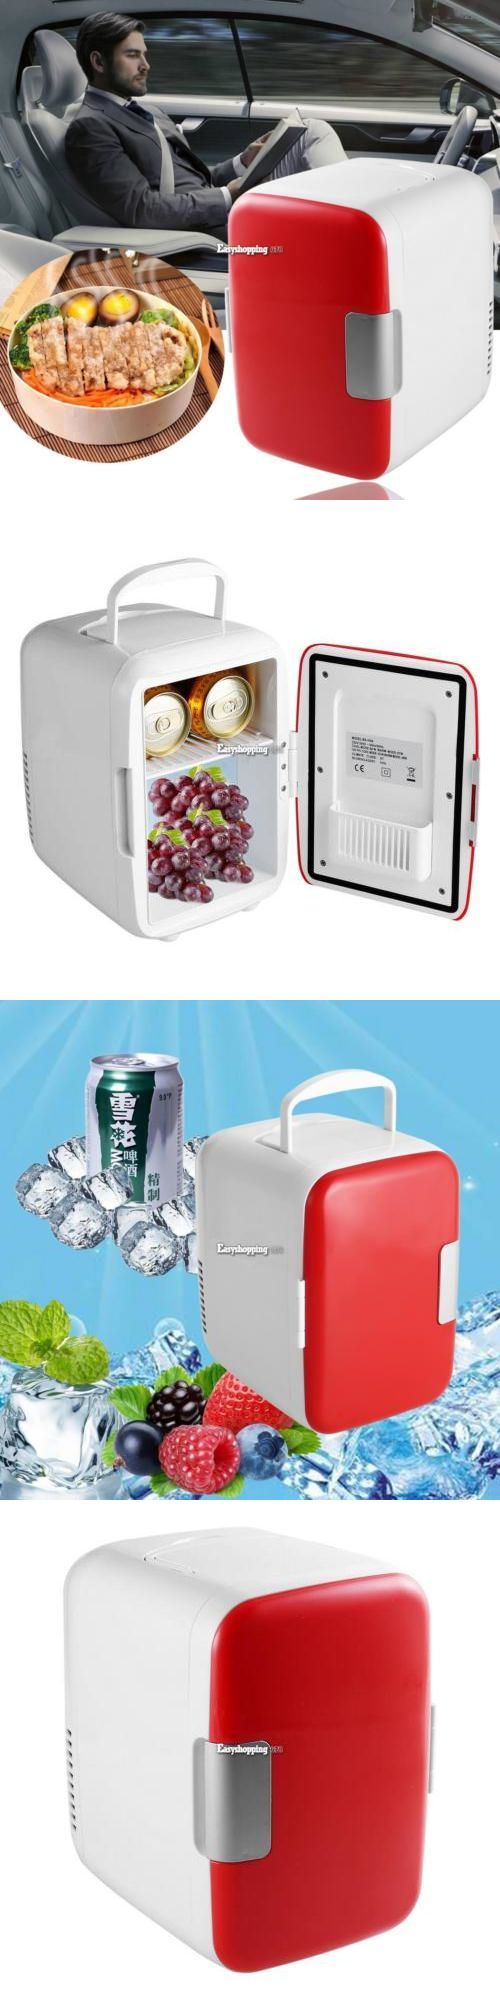 Mini Fridges 71262: Portable Mini Fridge Cooler And Warmer Auto Compact Car Boat Home Office Red -> BUY IT NOW ONLY: $30.5 on eBay!